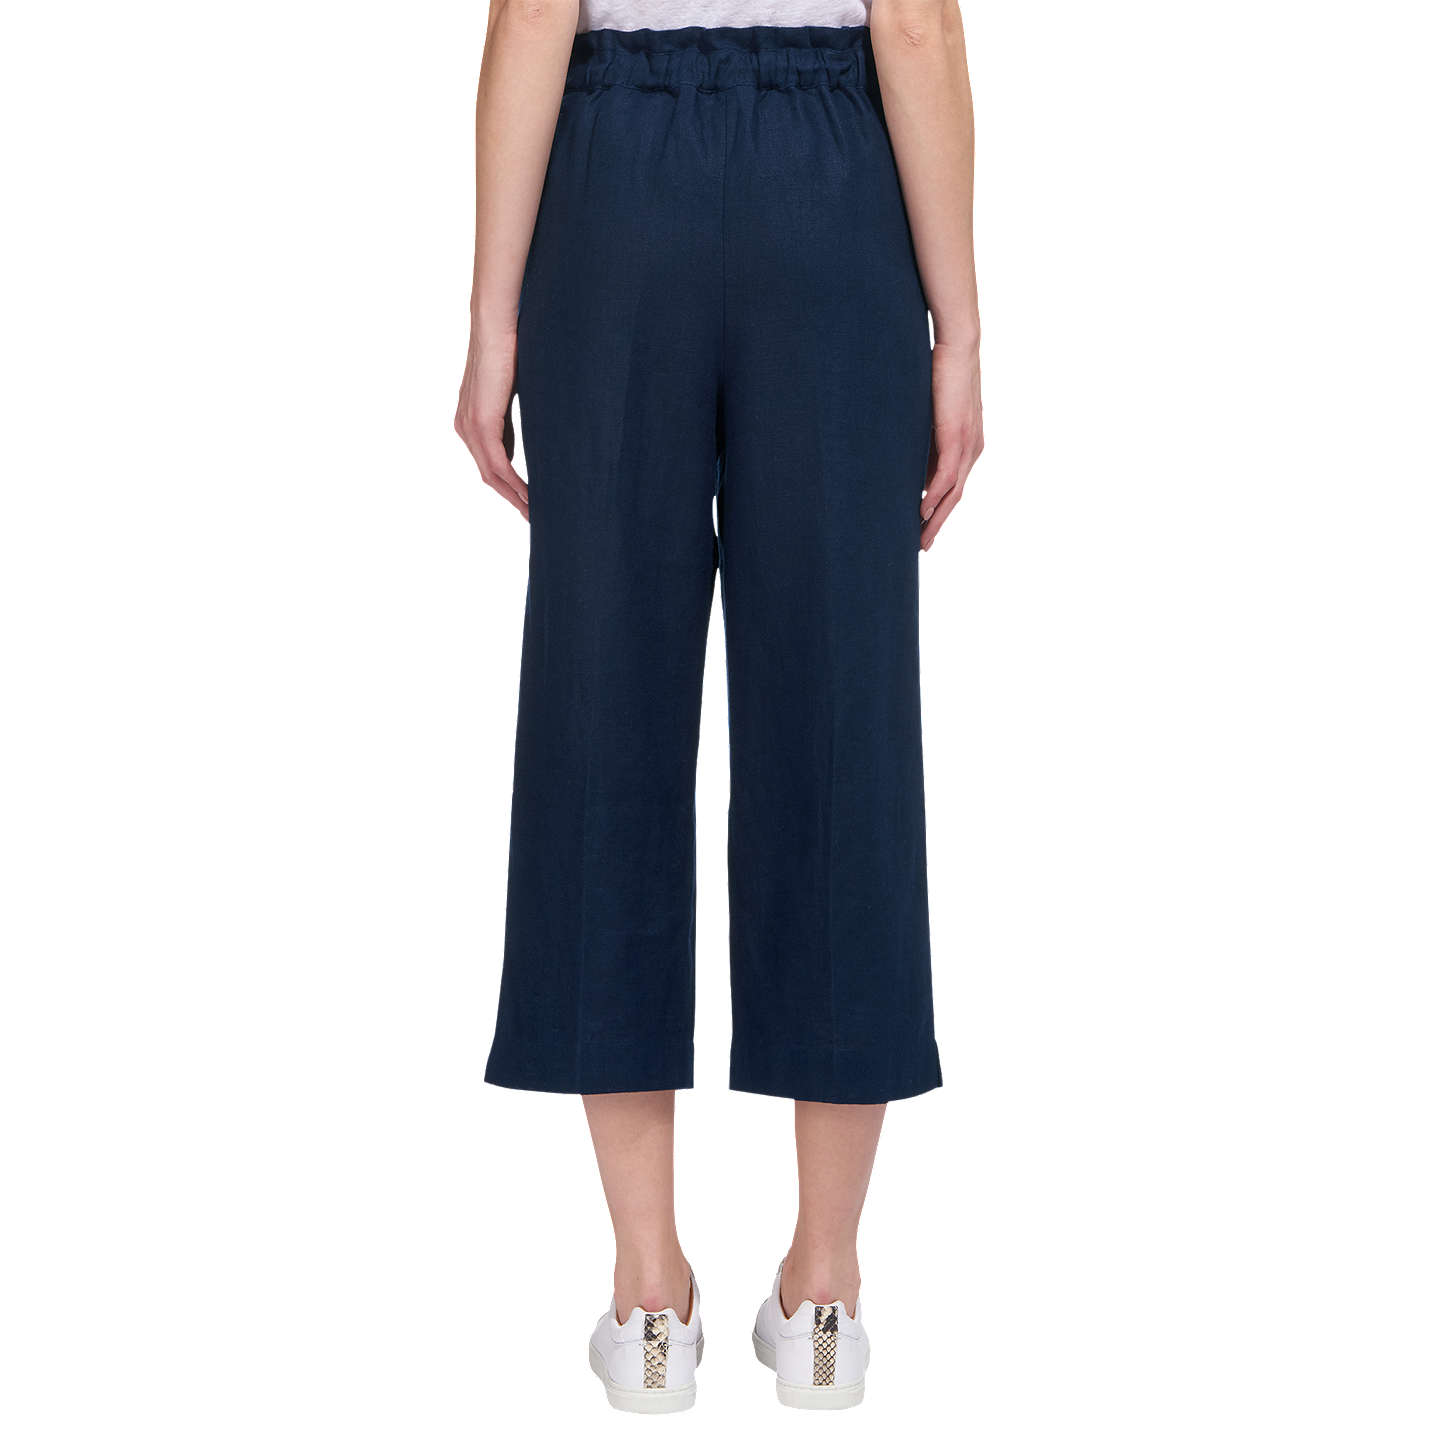 BuyWhistles Tie Waist Straight Leg Trousers, Navy, 10 Online at johnlewis.com